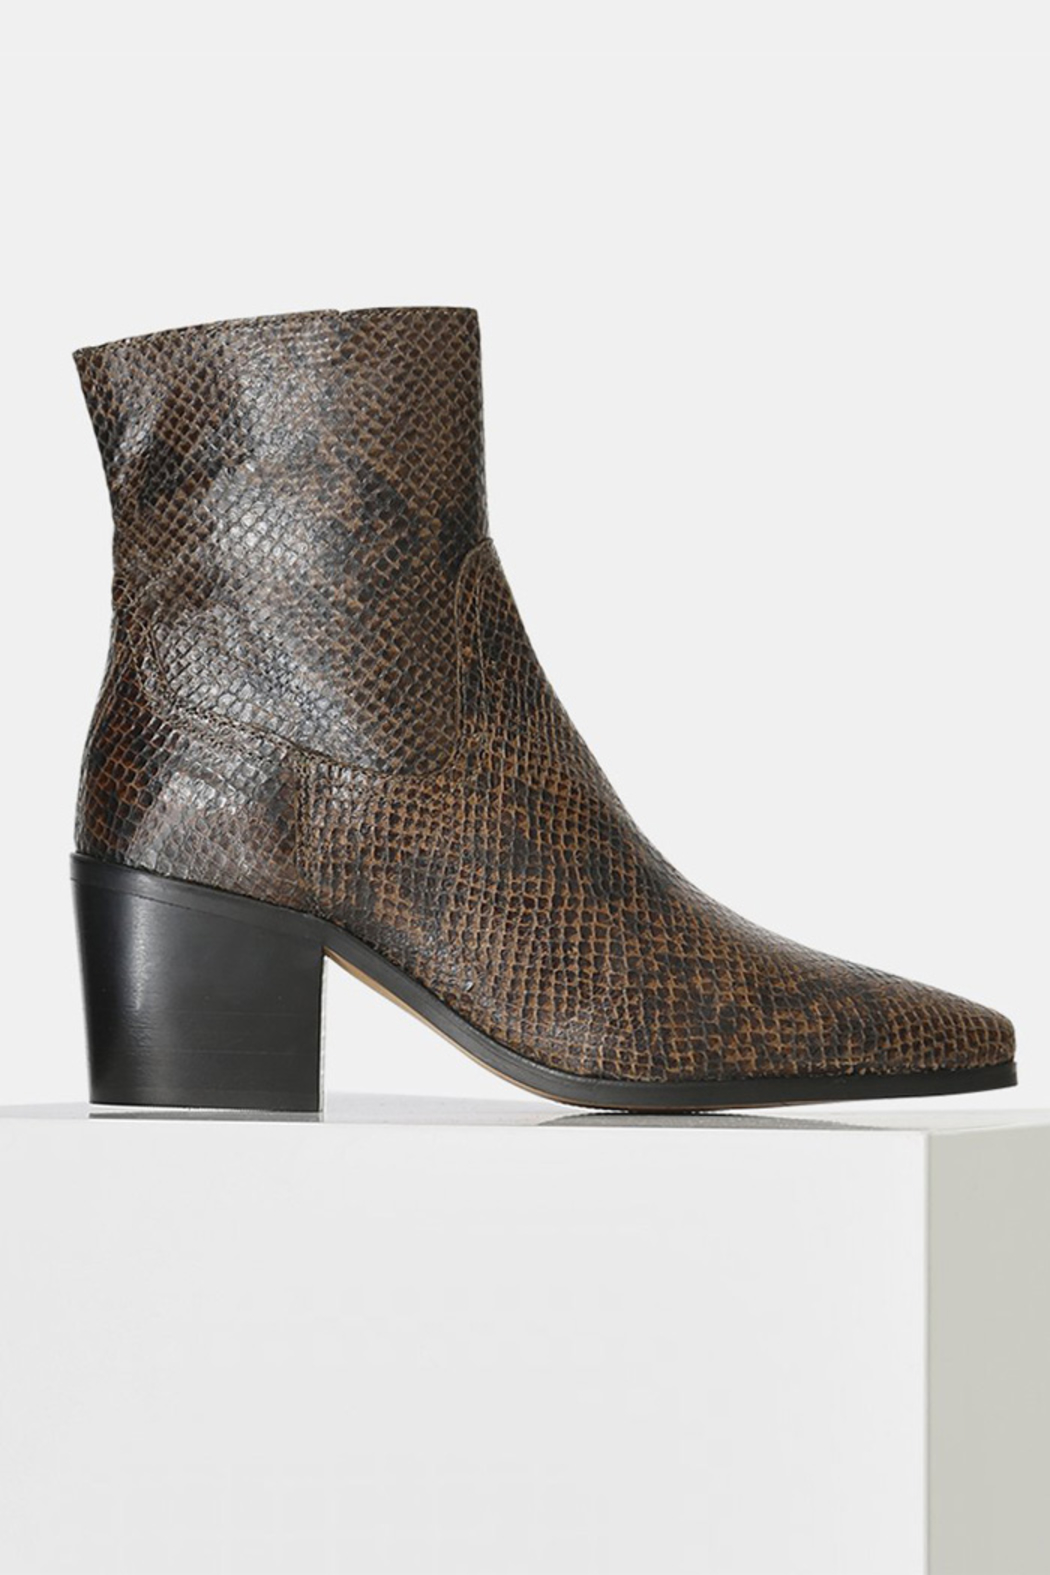 Shoe the Bear BLOCK HEEL SNAKE PRINT BOOT - Main Image